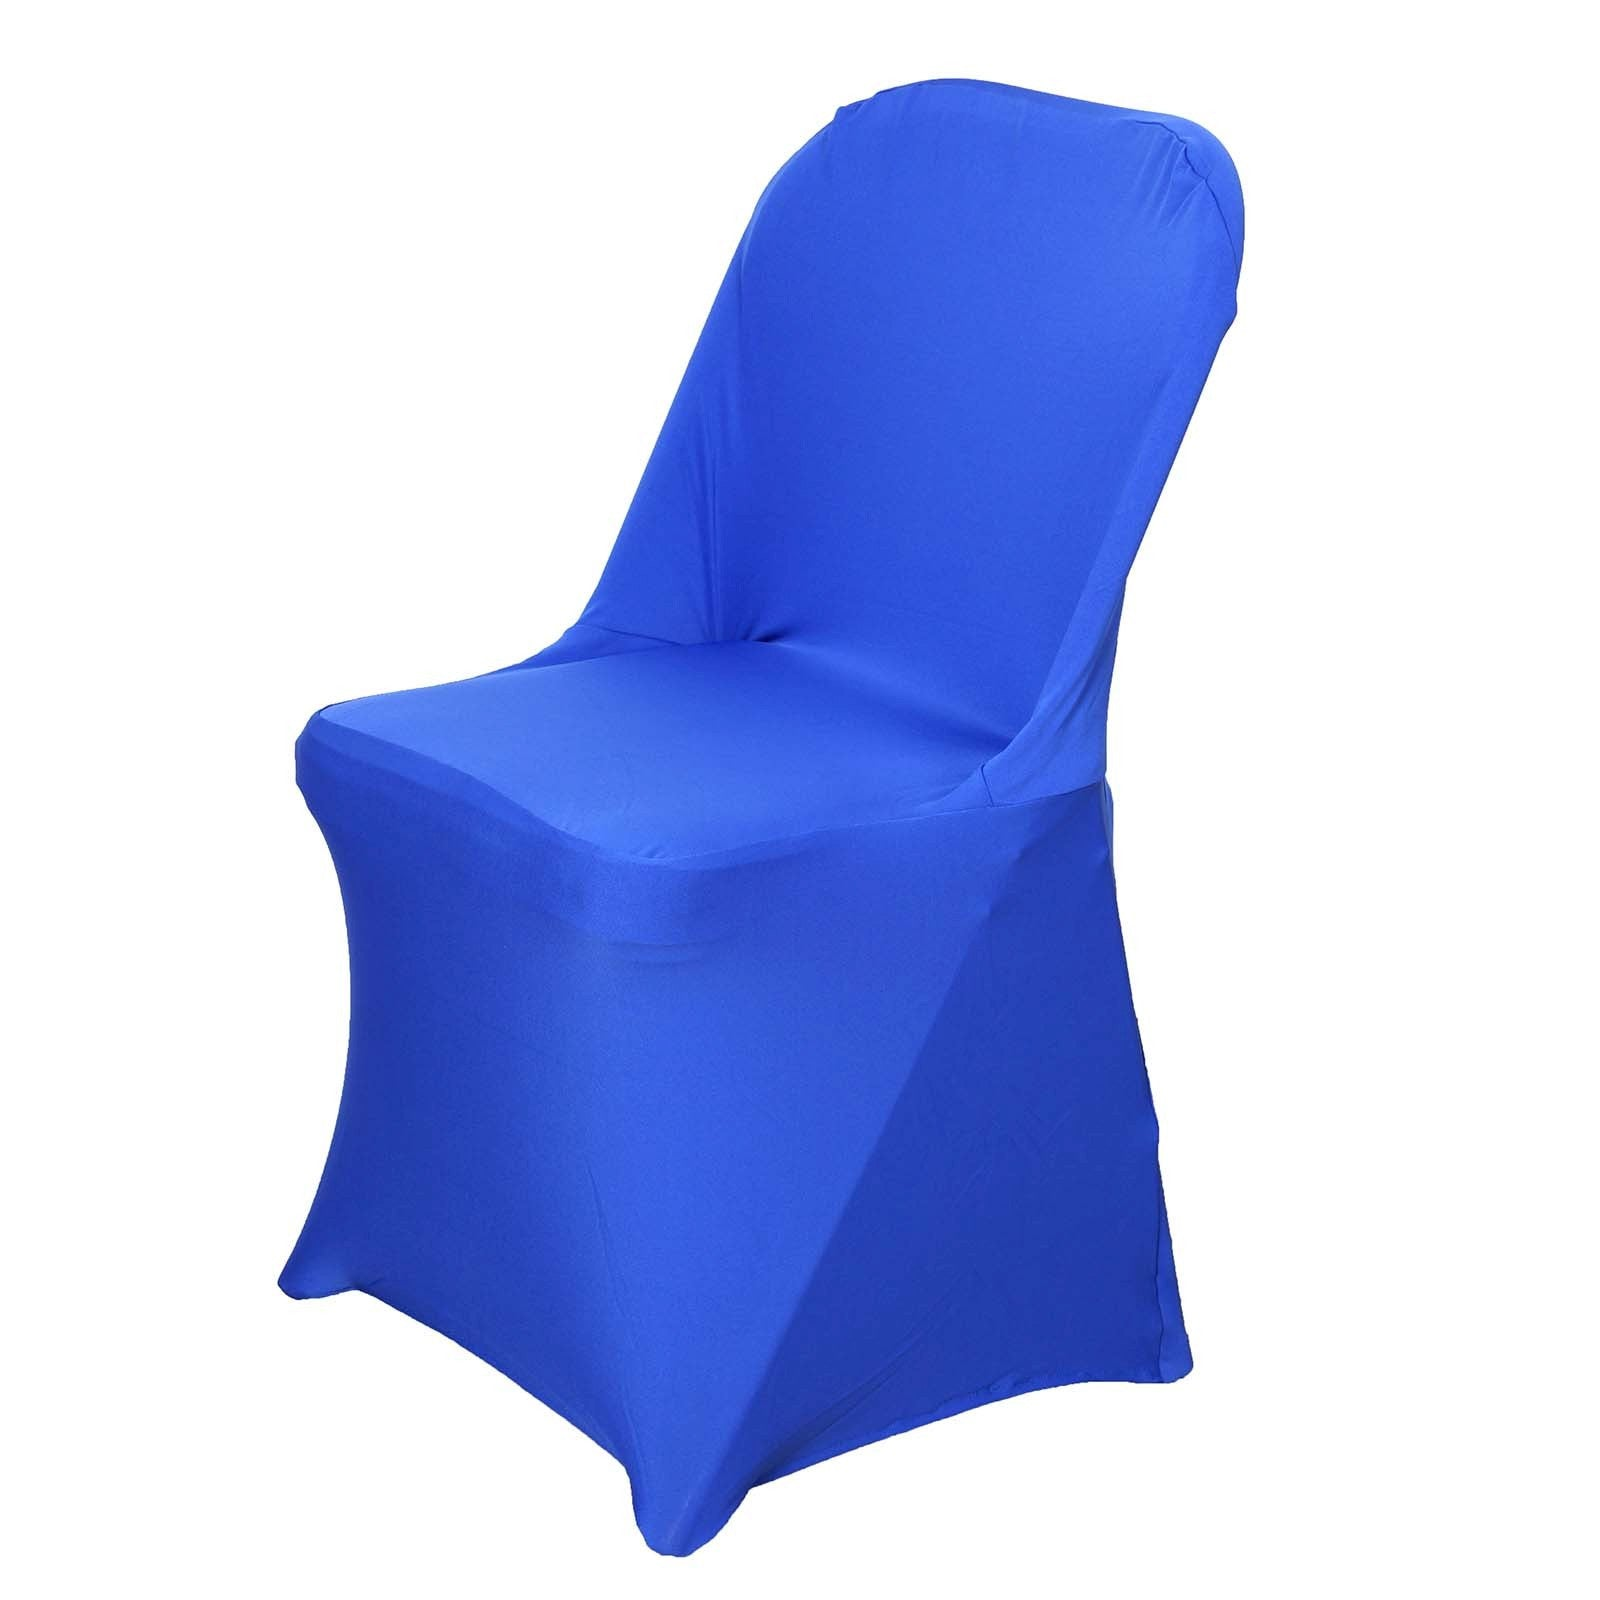 Chair Covers for Folding Chair Spandex Royal Blue